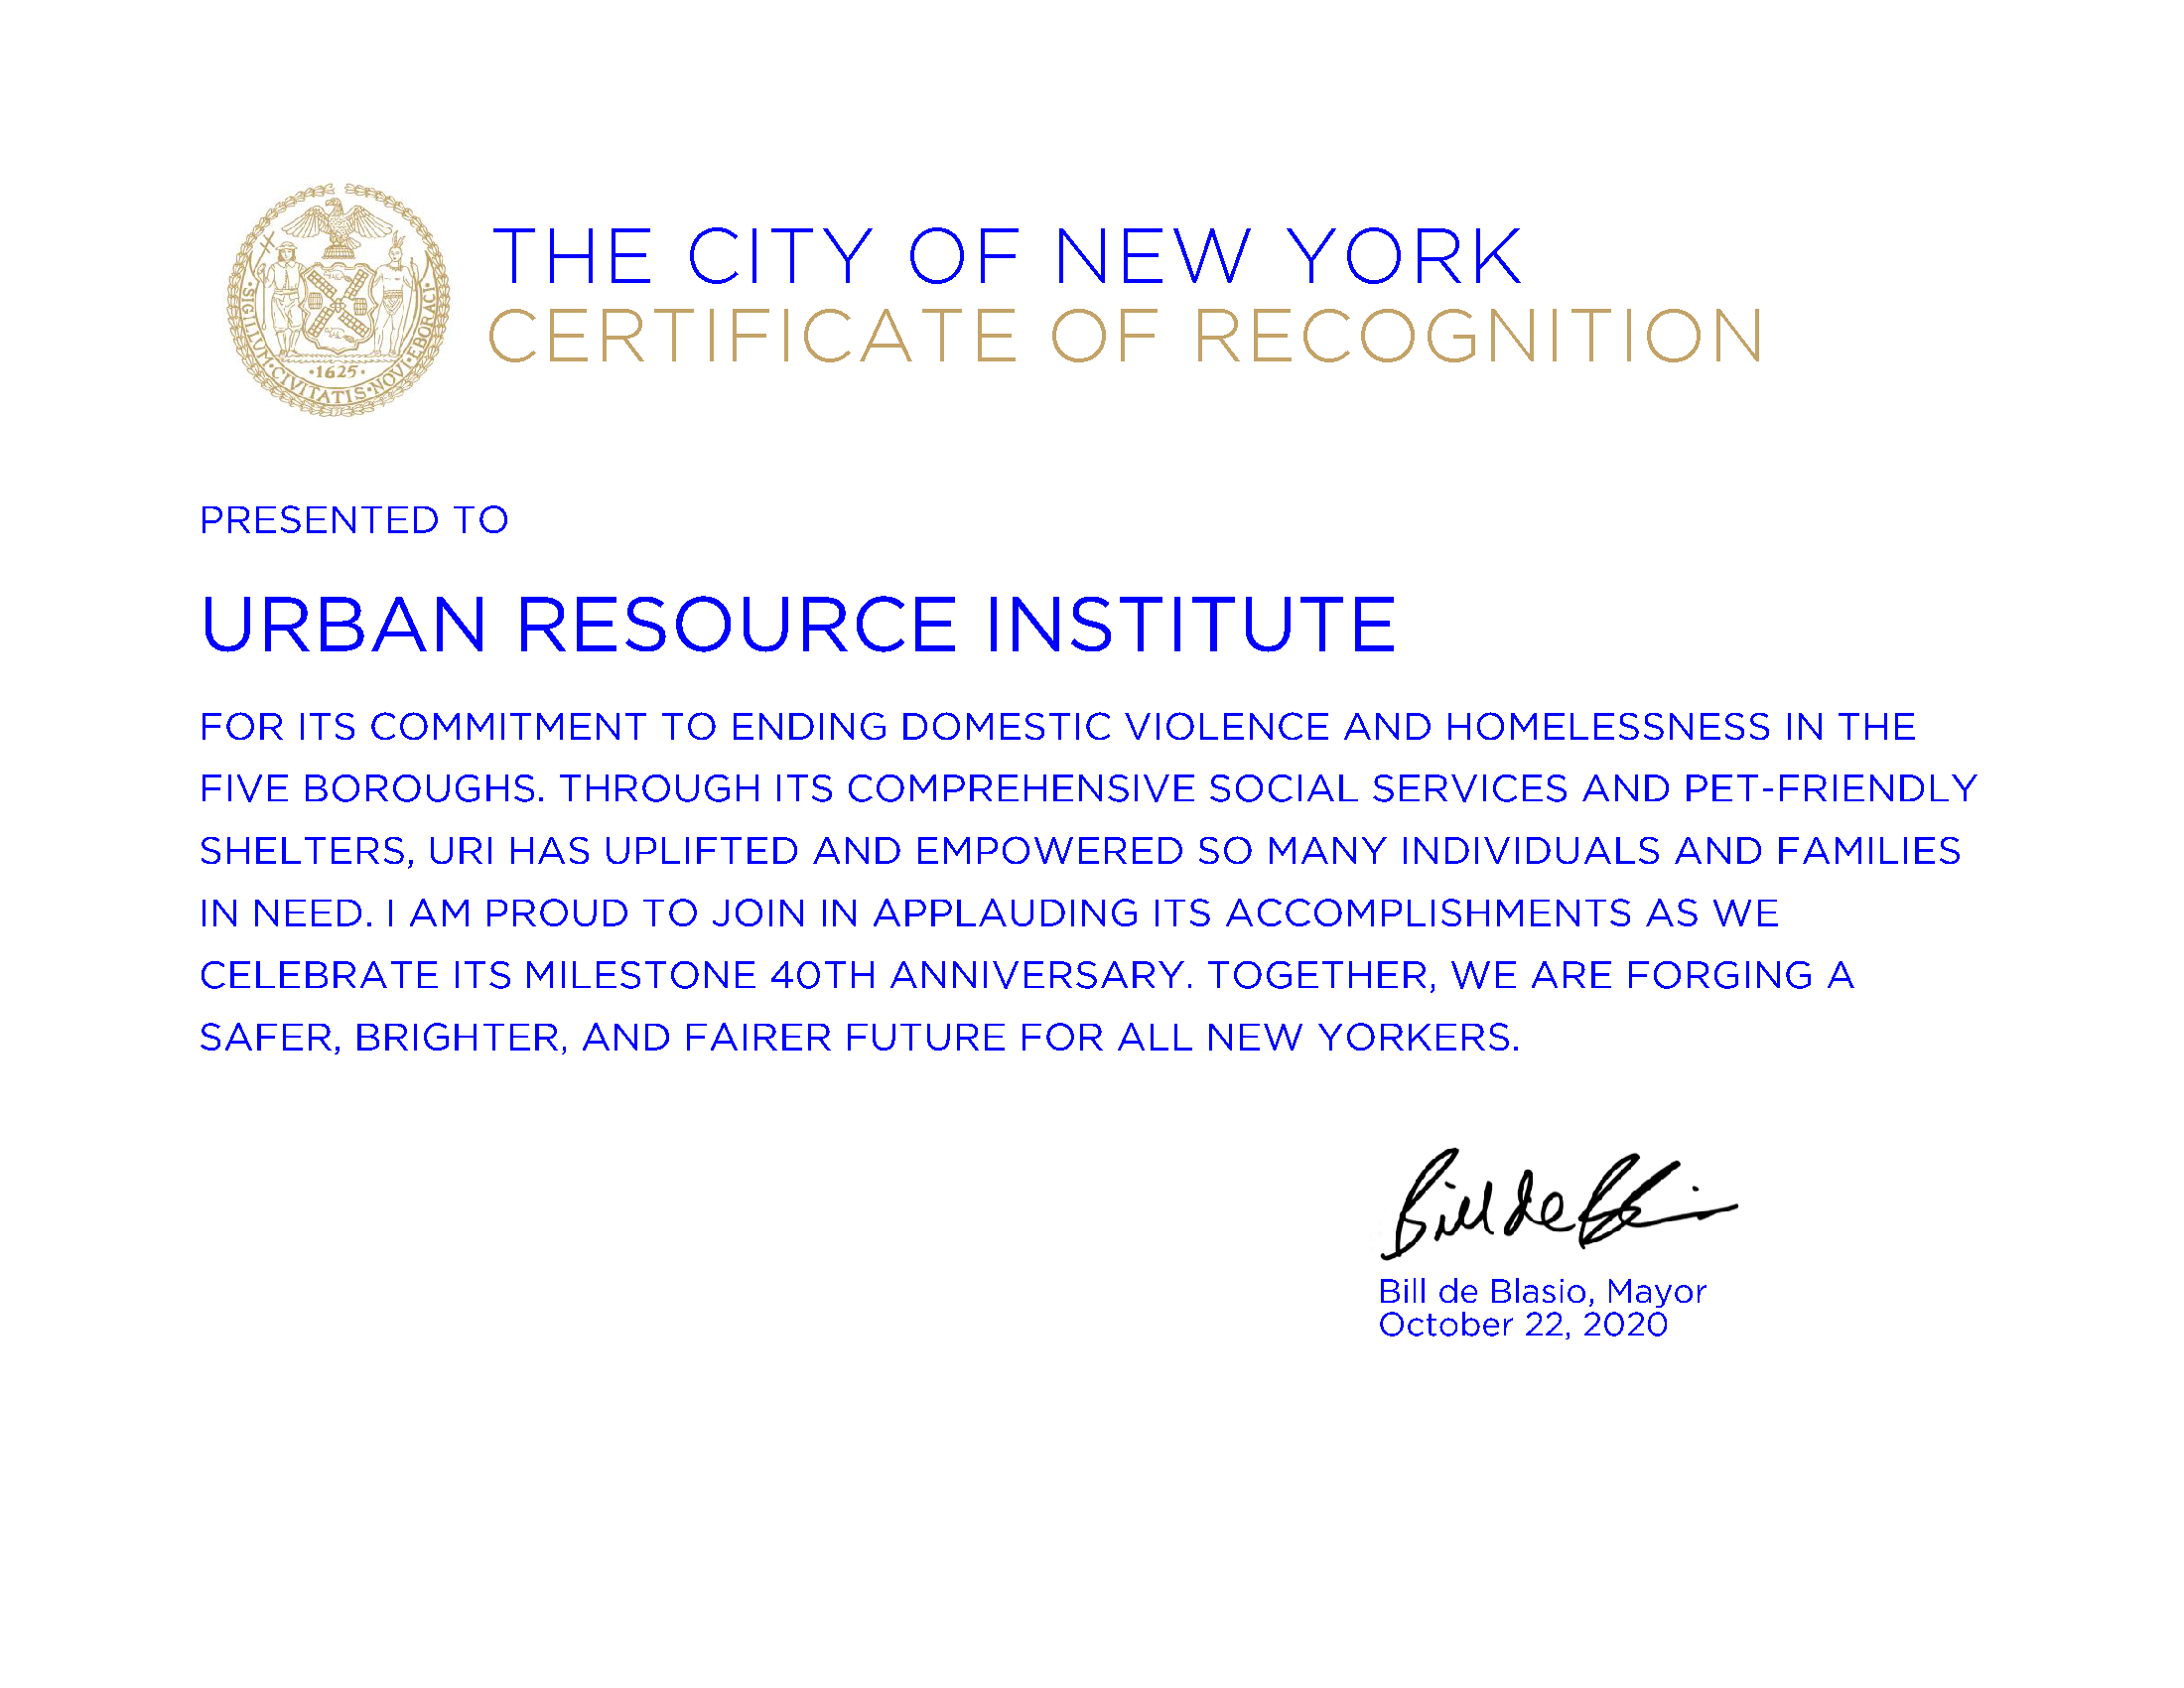 City of New York Certificate of Recognition